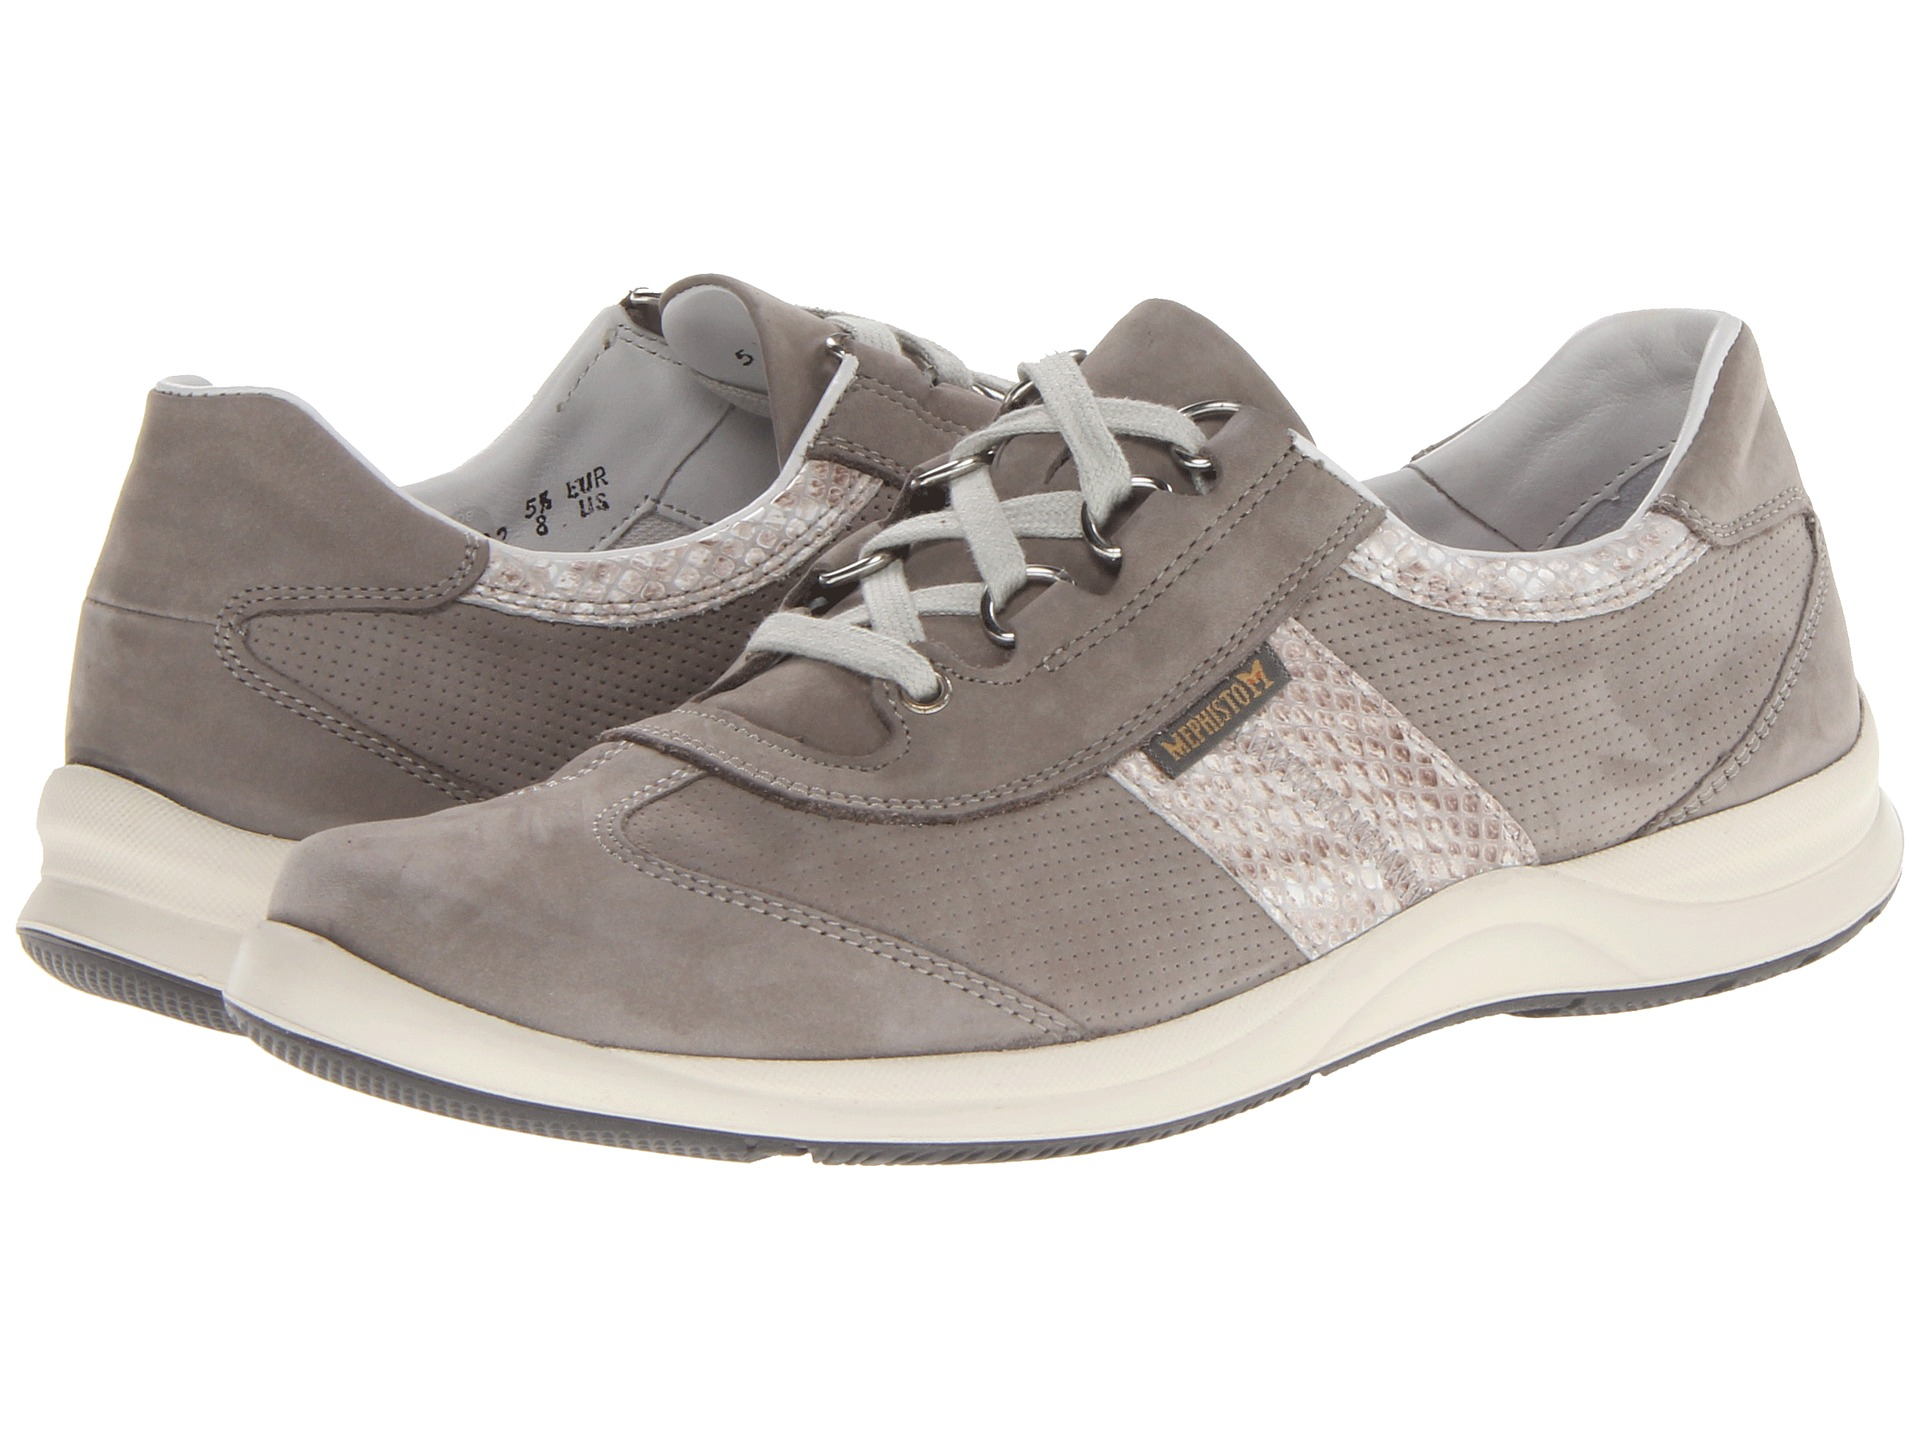 Mephisto Womens Shoes Canada